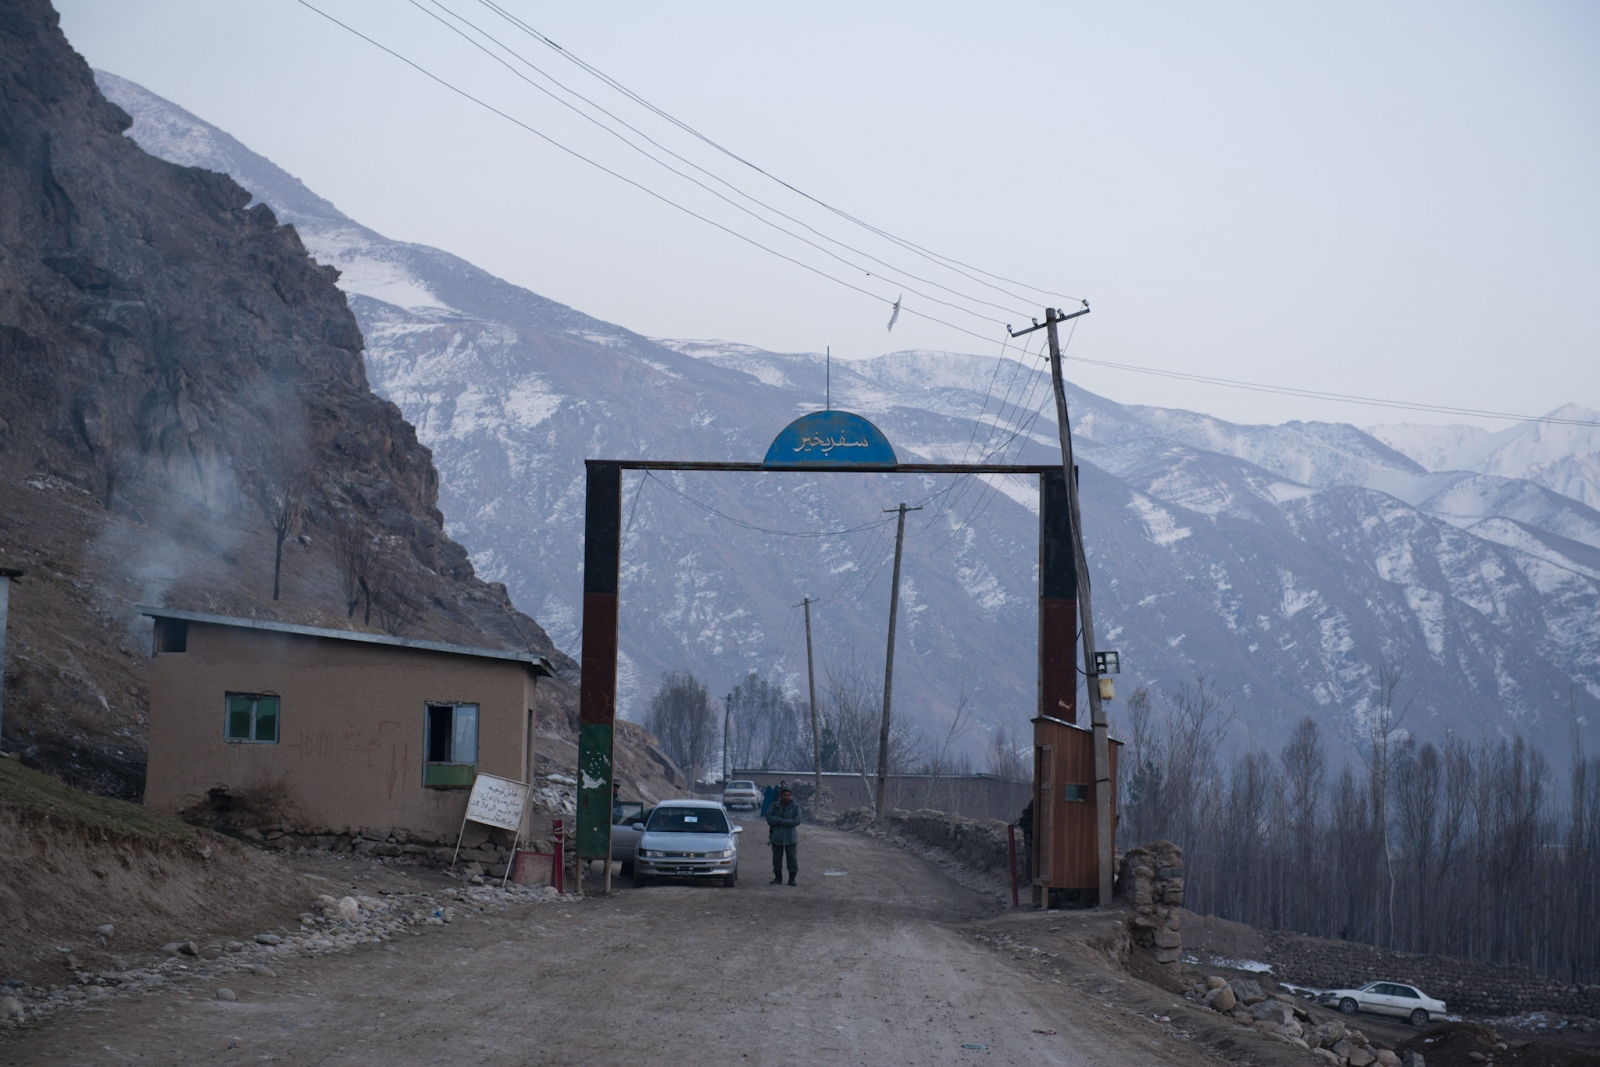 FAIZABAD, AFGHANISTAN | 2014-12-13 | The gate signifying the end of the town of Faizabad where drivers have to pass through to get to the Jorm district in northern province of Badakhshan.